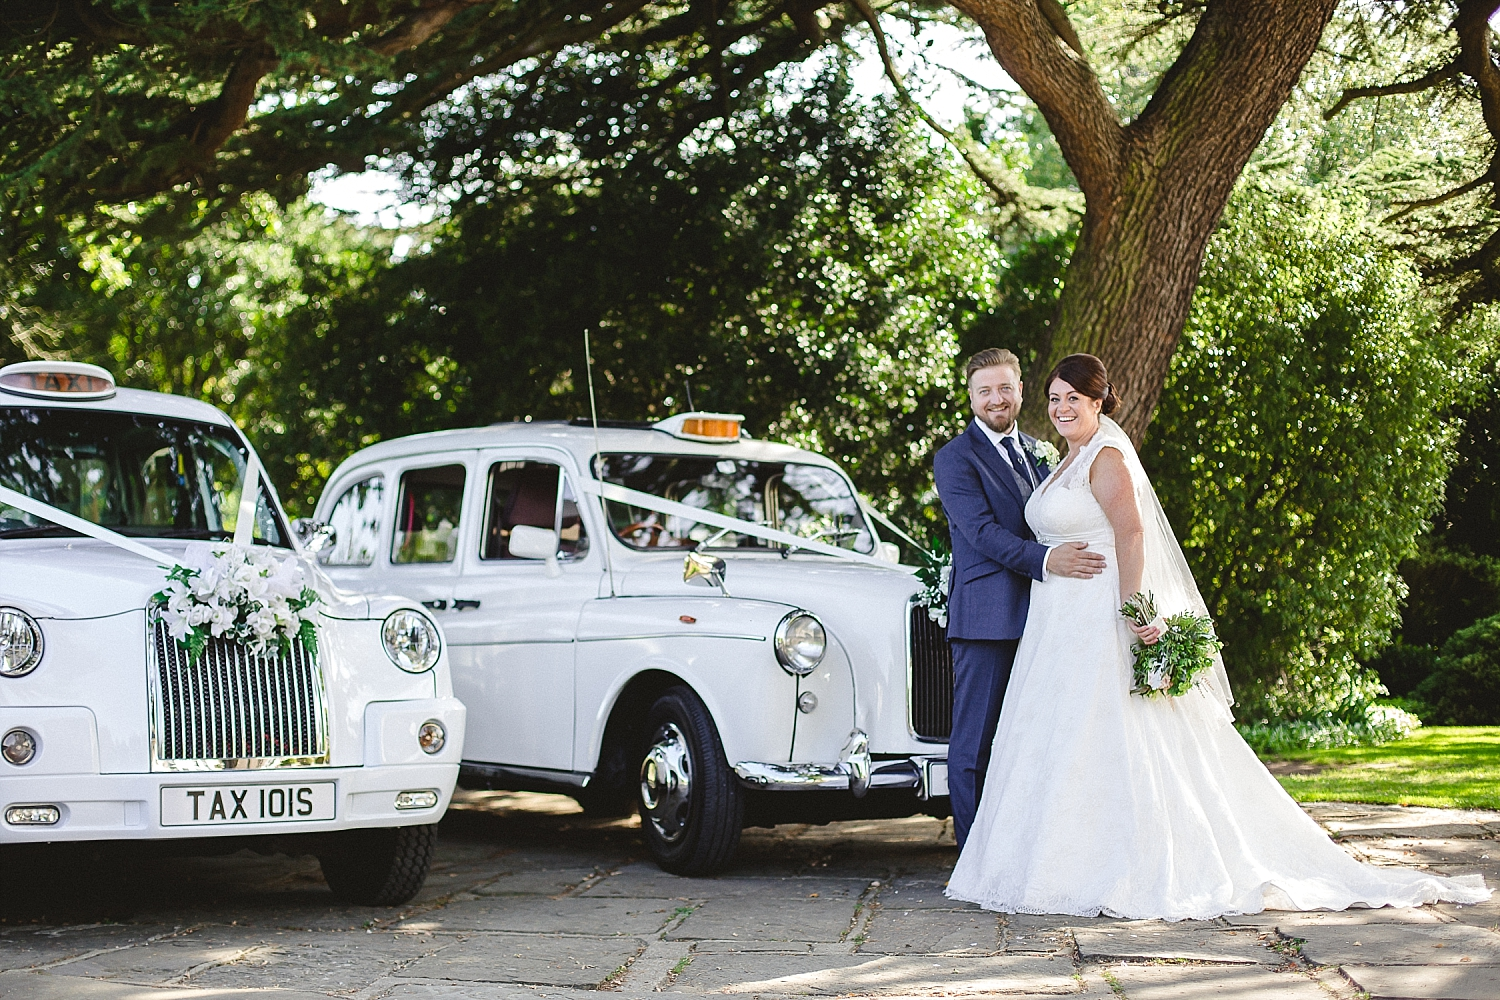 Moor Hall Wedding - White Wedding Taxis - Anesta Broad Photography